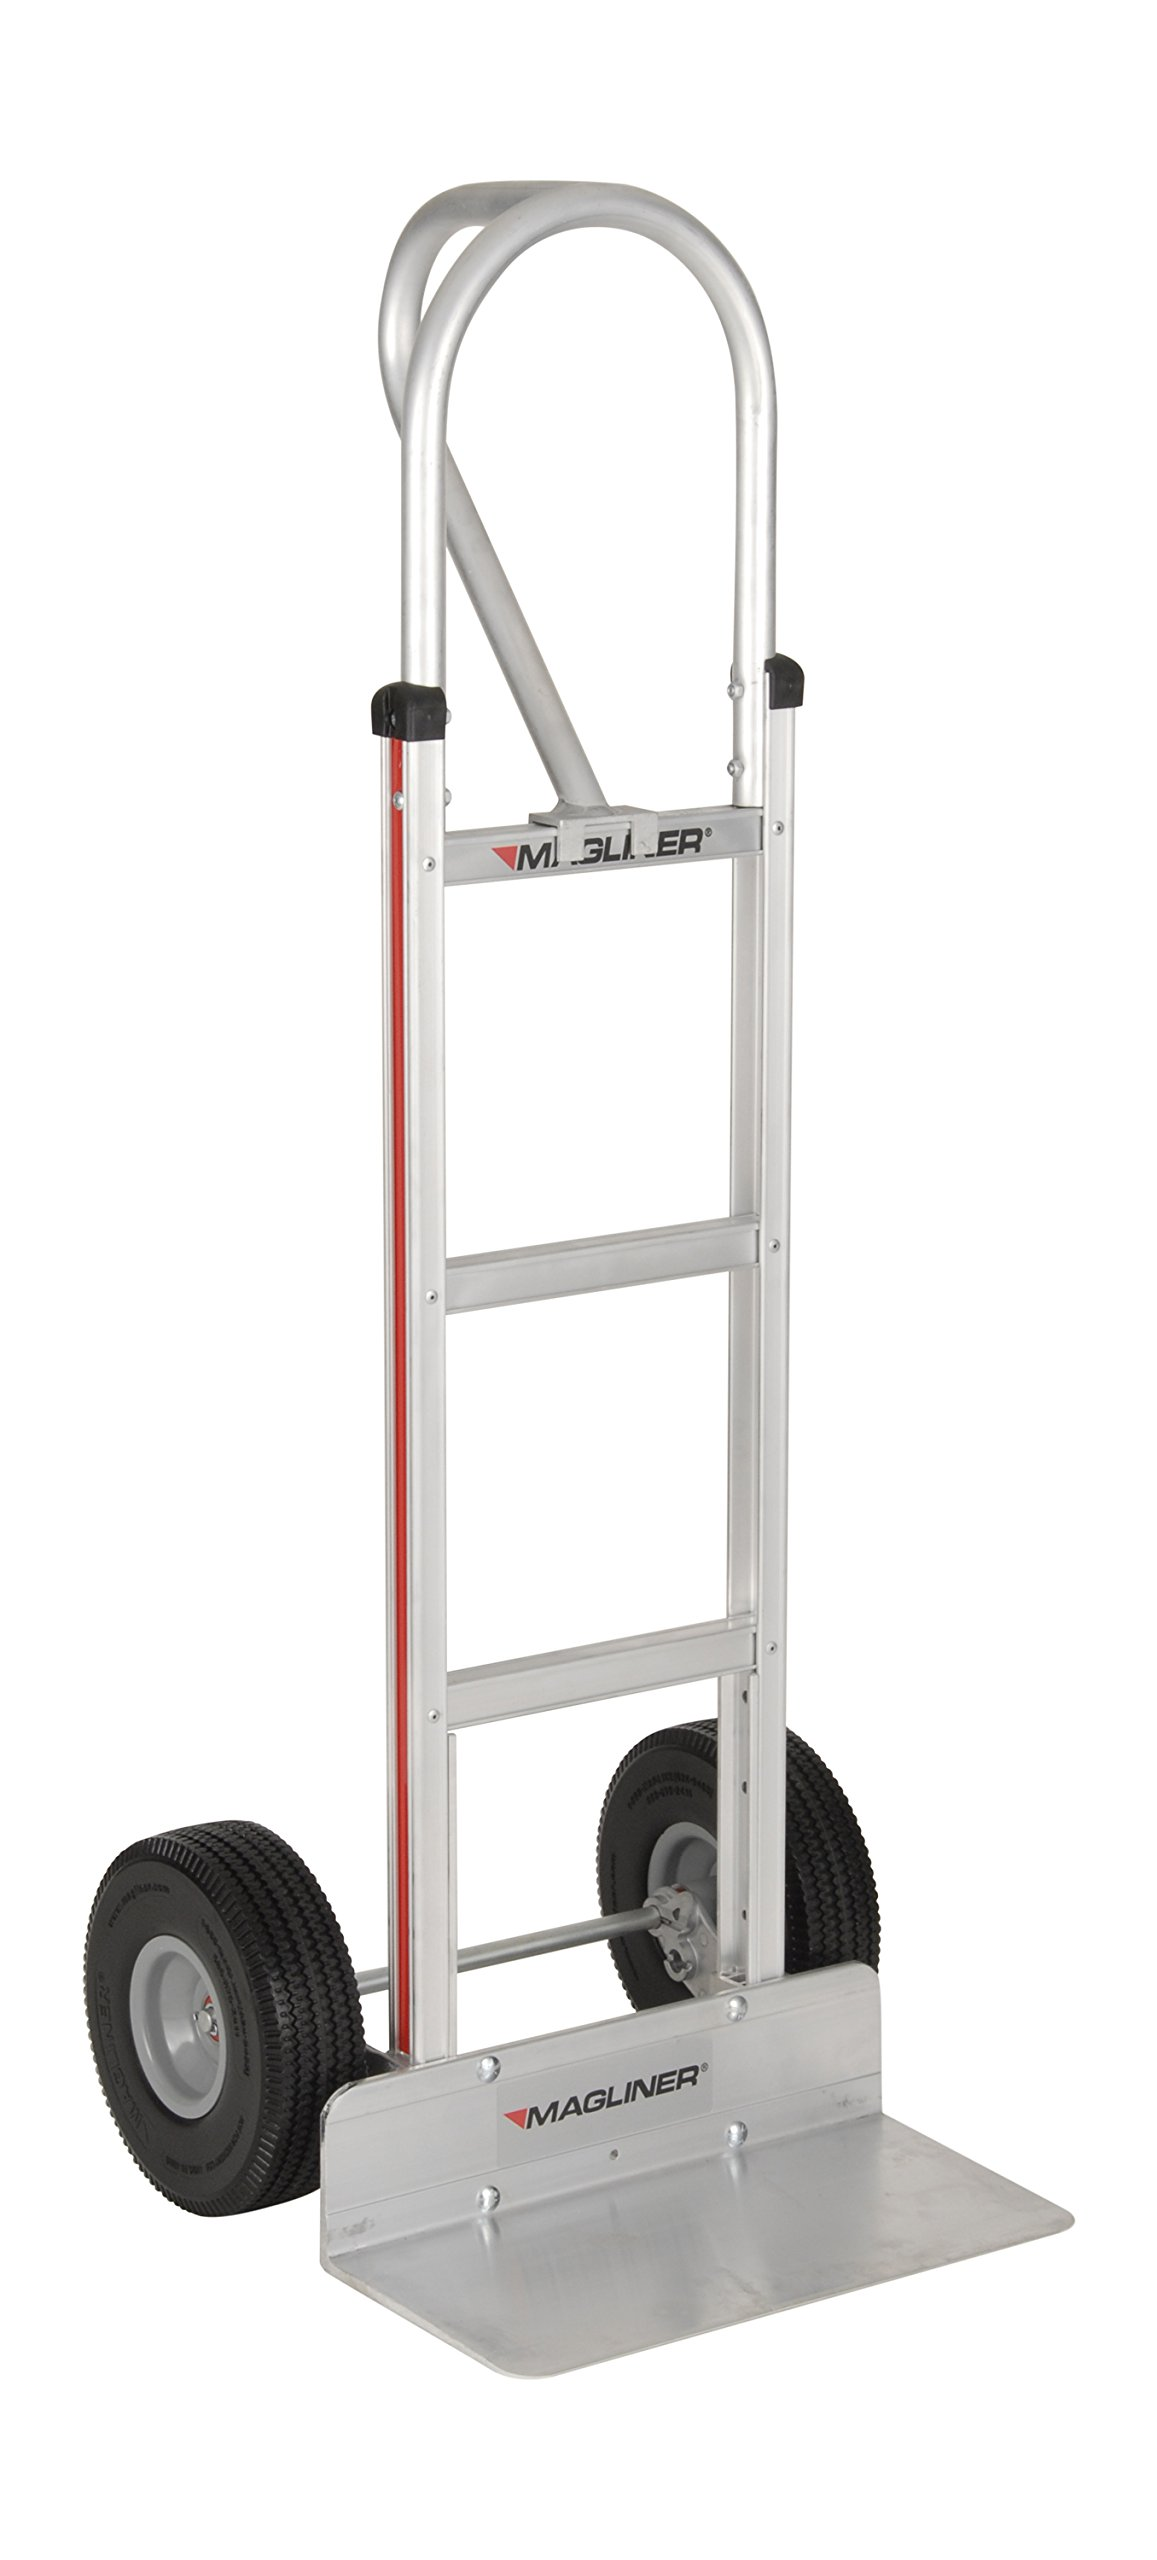 Magliner HMK15AG2C Aluminum Hand Truck, Vertical Loop Handle, 18'' x 9'' Aluminum Extruded Nose Plate, 500 lb Capacity by Magliner